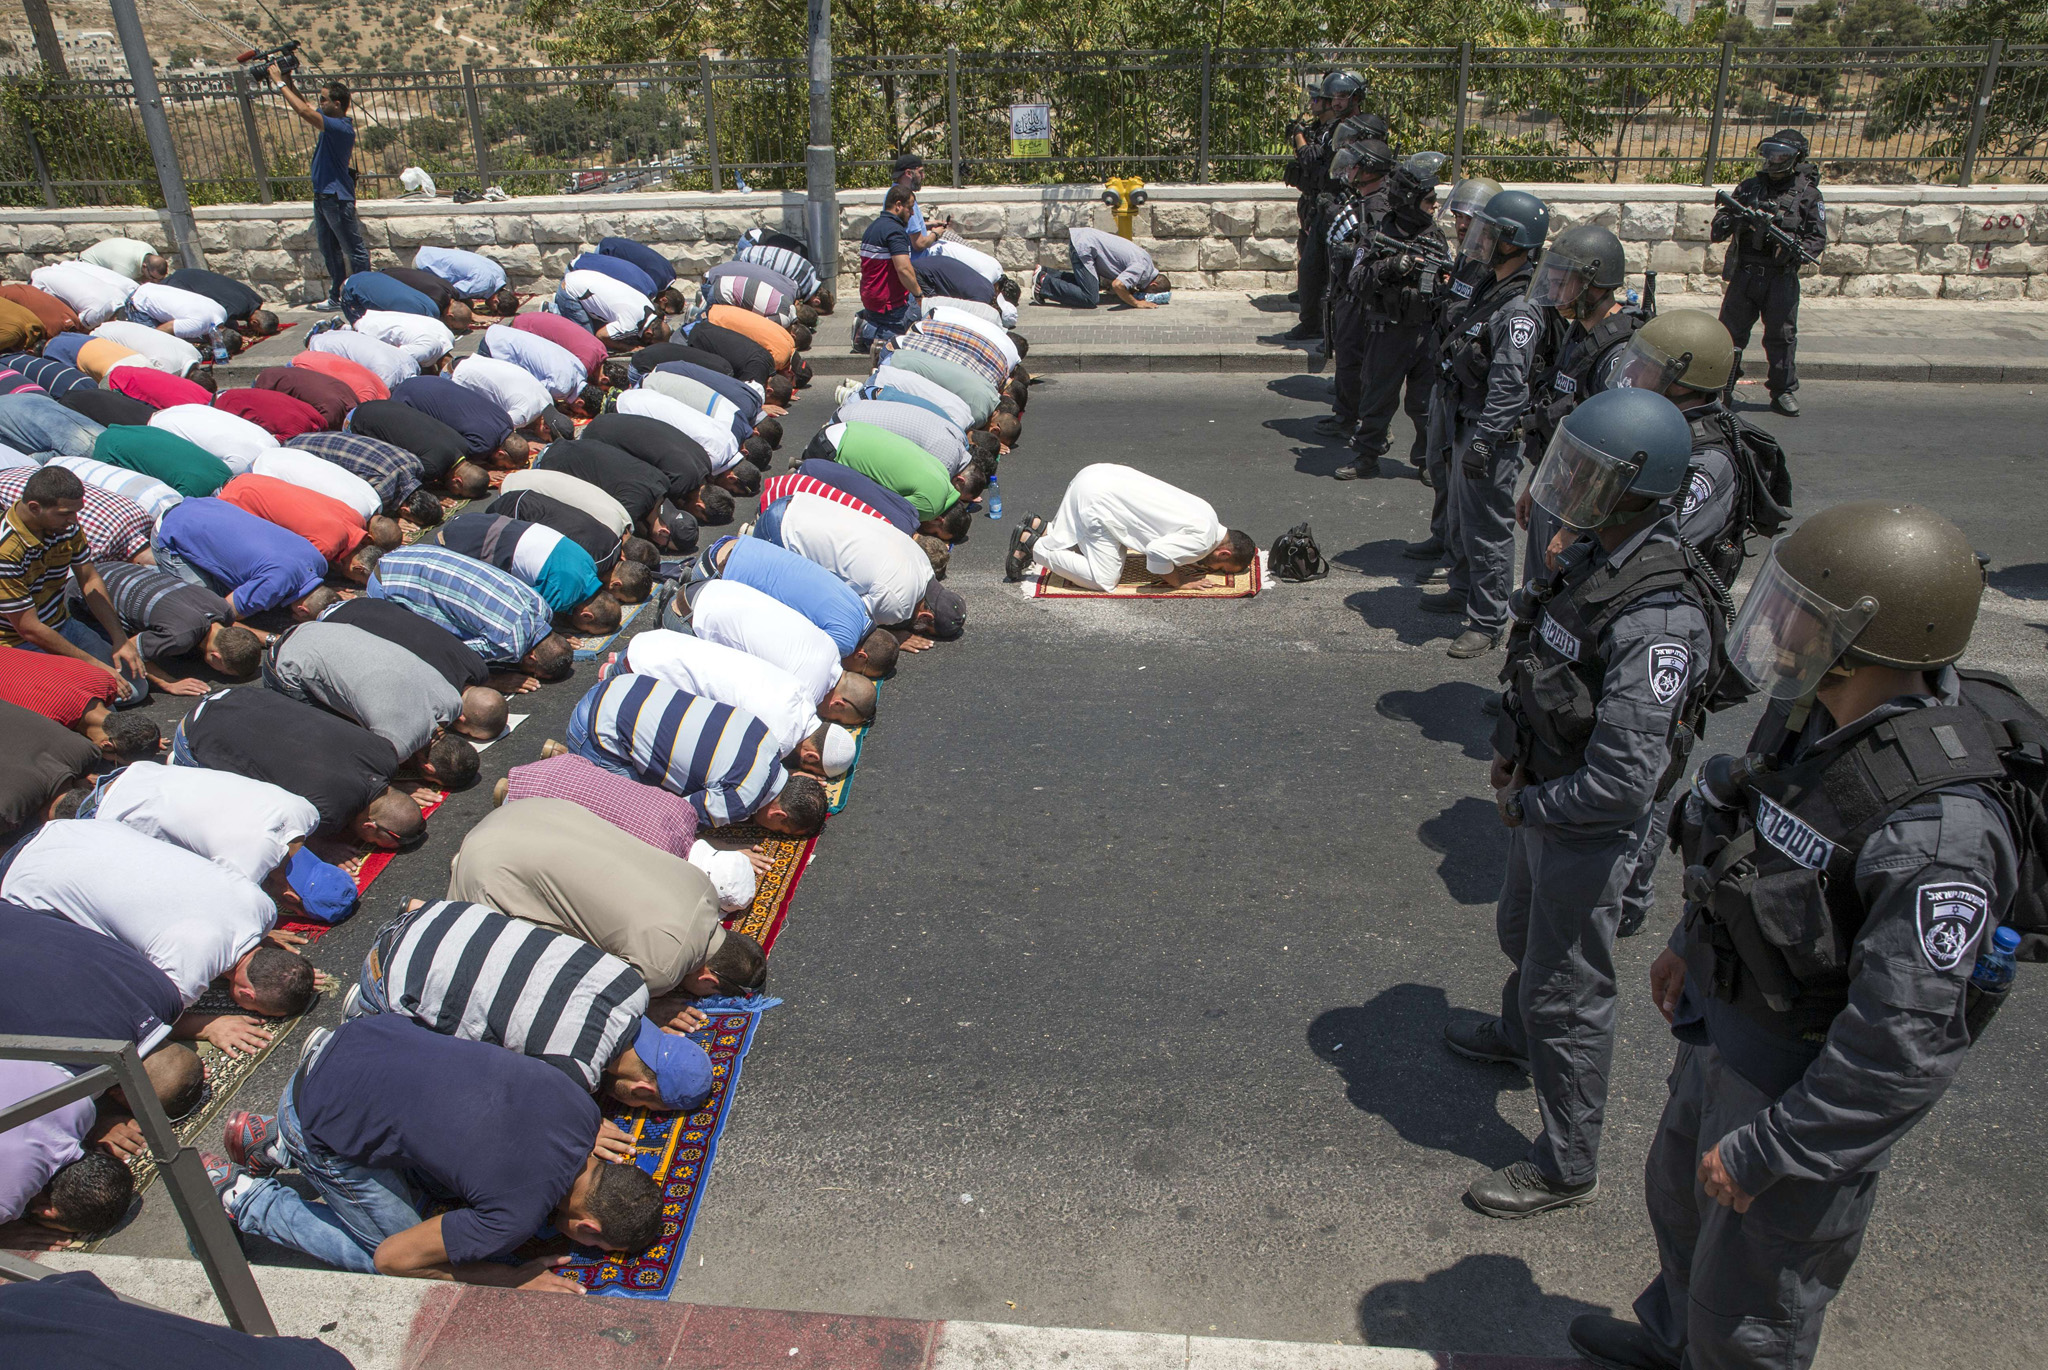 Muslim worshipers, guarded by Israeli police, pray on the streets of the Wadi al-Joz neighborhood in east Jerusalem, following restrictions by Israeli police to only allow men above 50-year-old to access the Al-Aqsa Mosque compound.